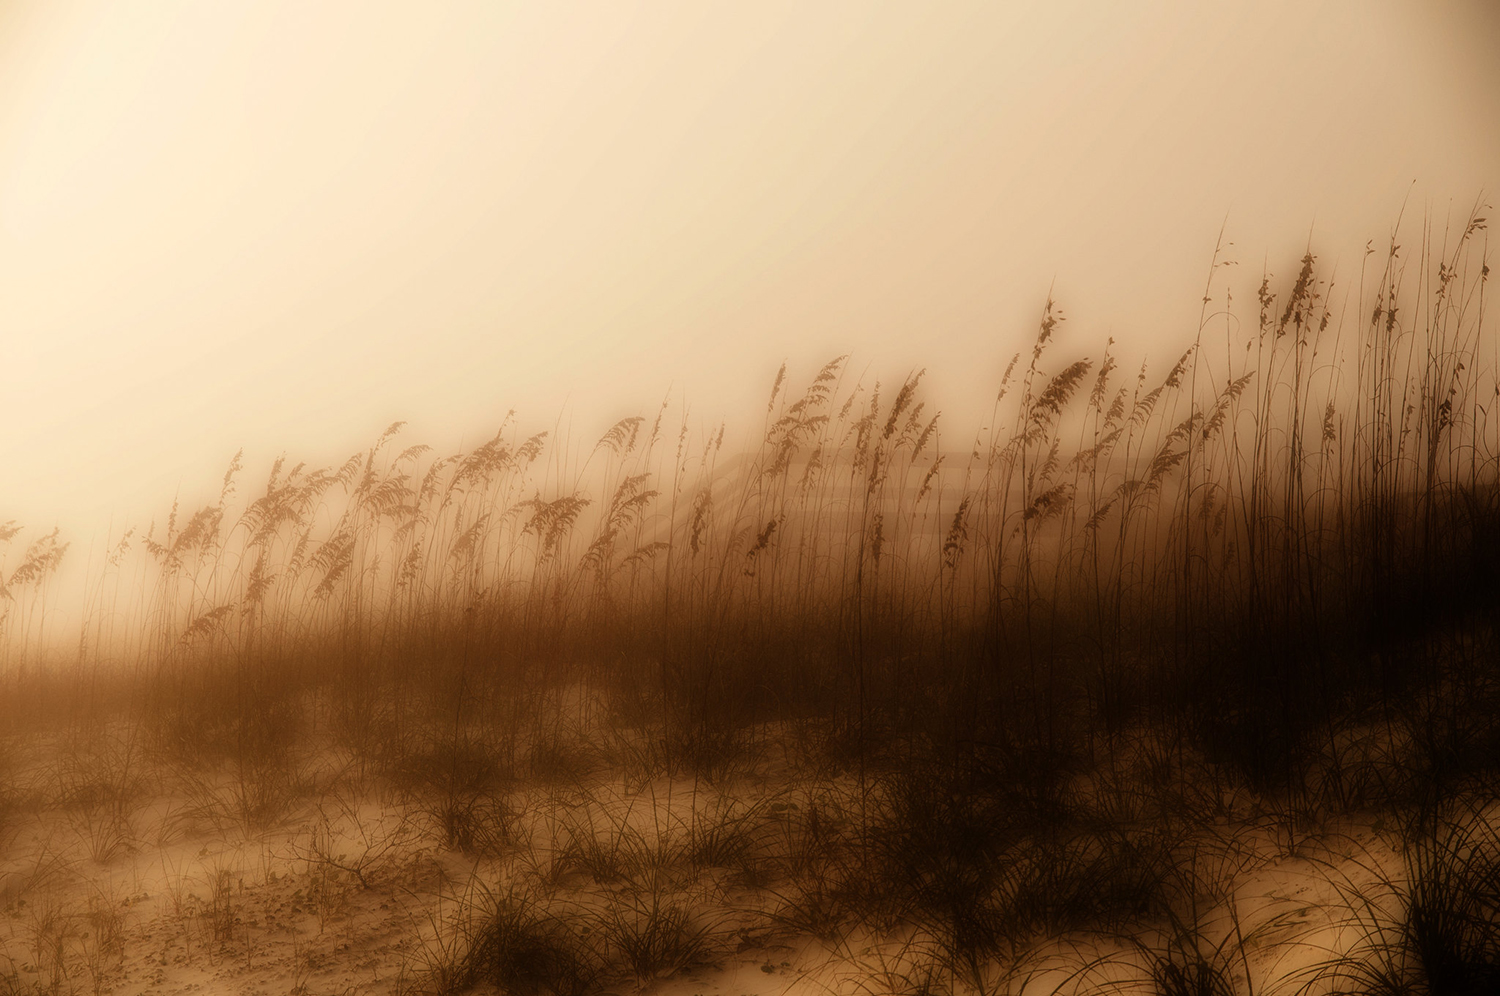 Sea Oats in the Mist